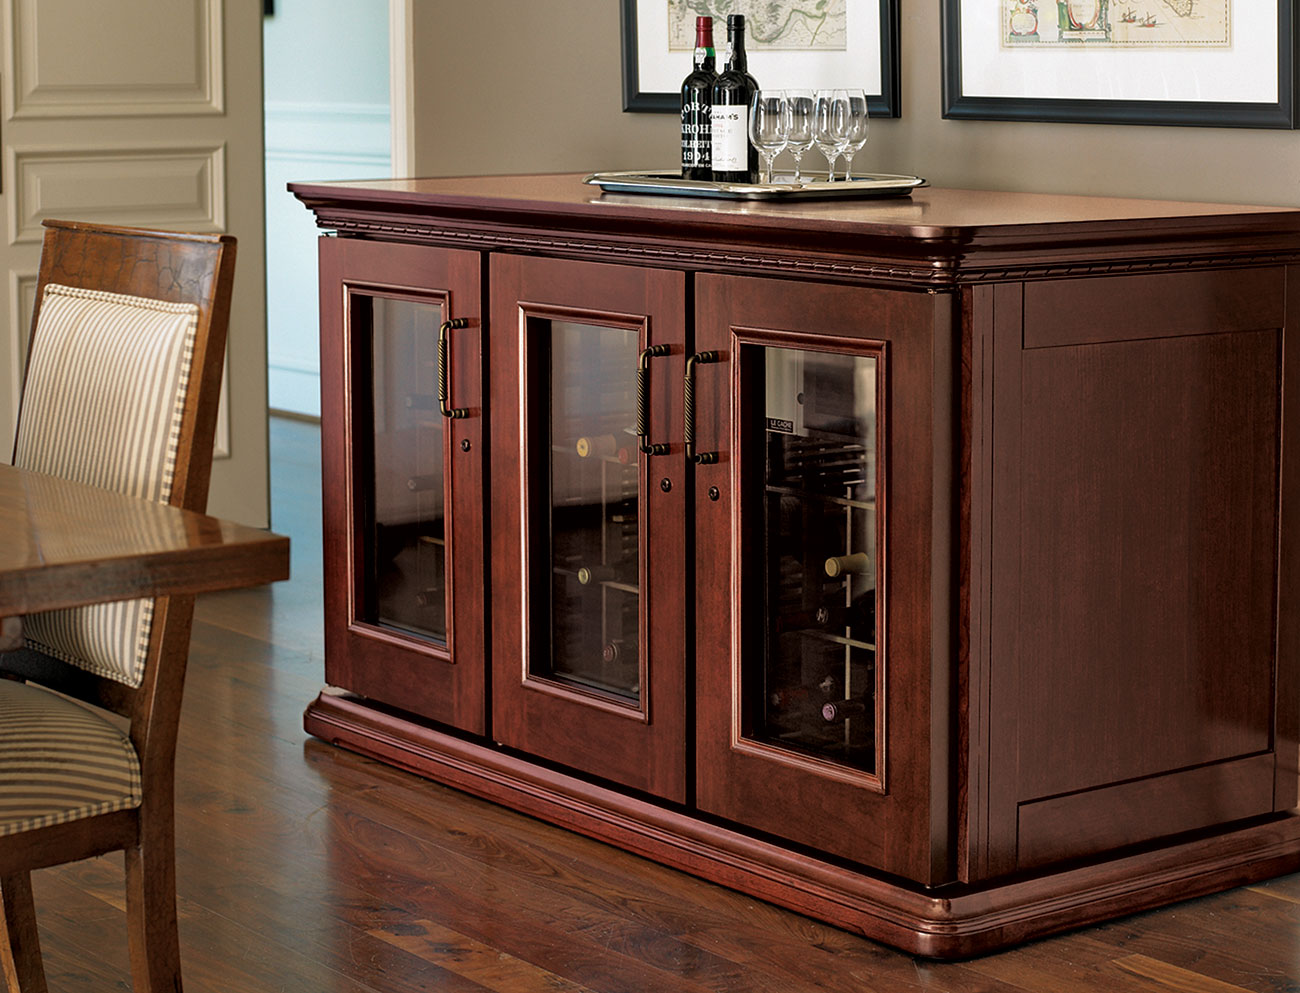 5 Simple Storage Solutions For Large Format Wine Bottles